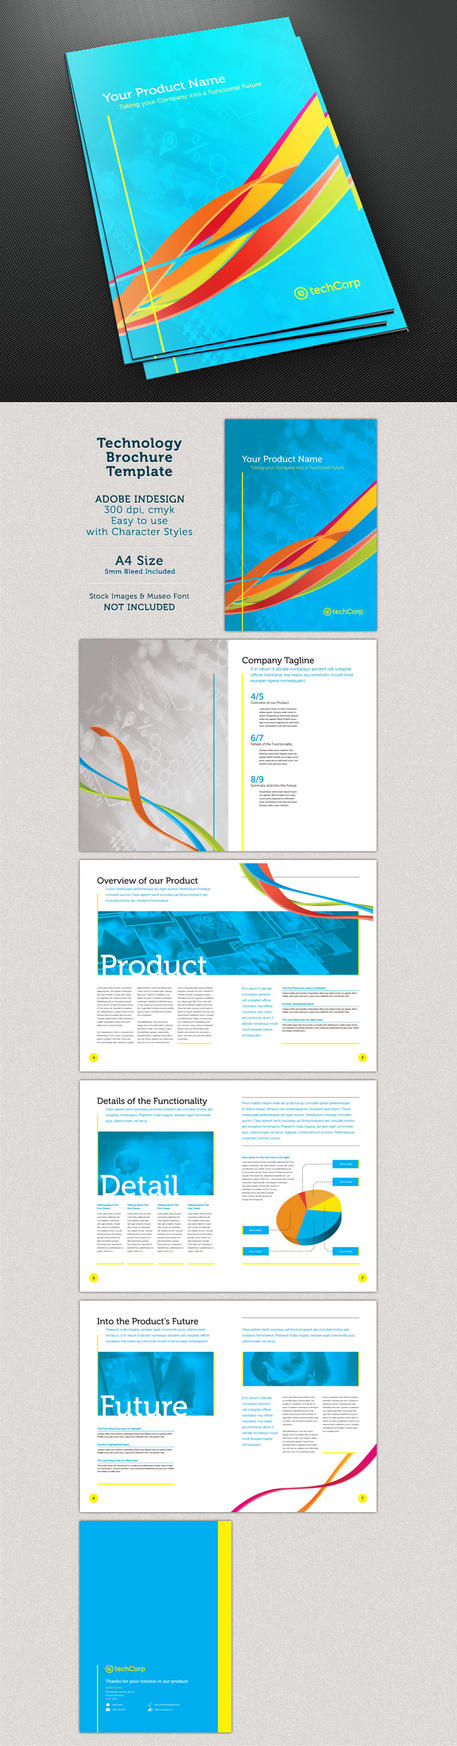 Whirls technology a4 10 page brochure template by for 4 page brochure template